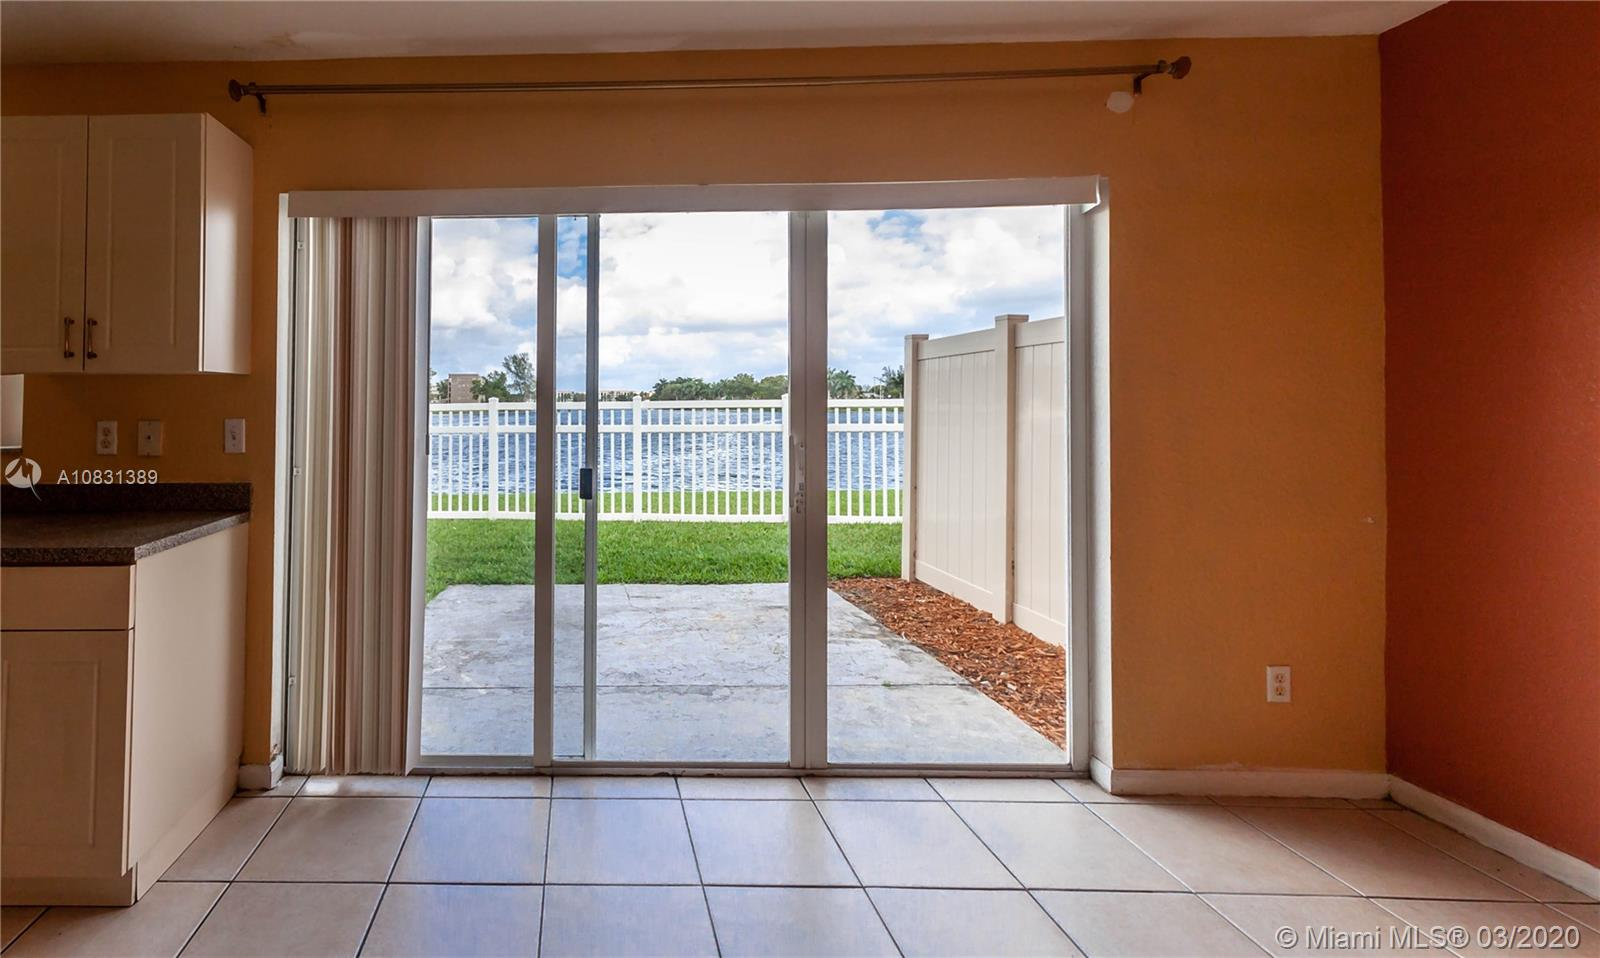 2053 SW 87th Ter, Miramar, Florida 33025, 3 Bedrooms Bedrooms, ,3 BathroomsBathrooms,Residential Lease,For Rent,2053 SW 87th Ter,A10831389